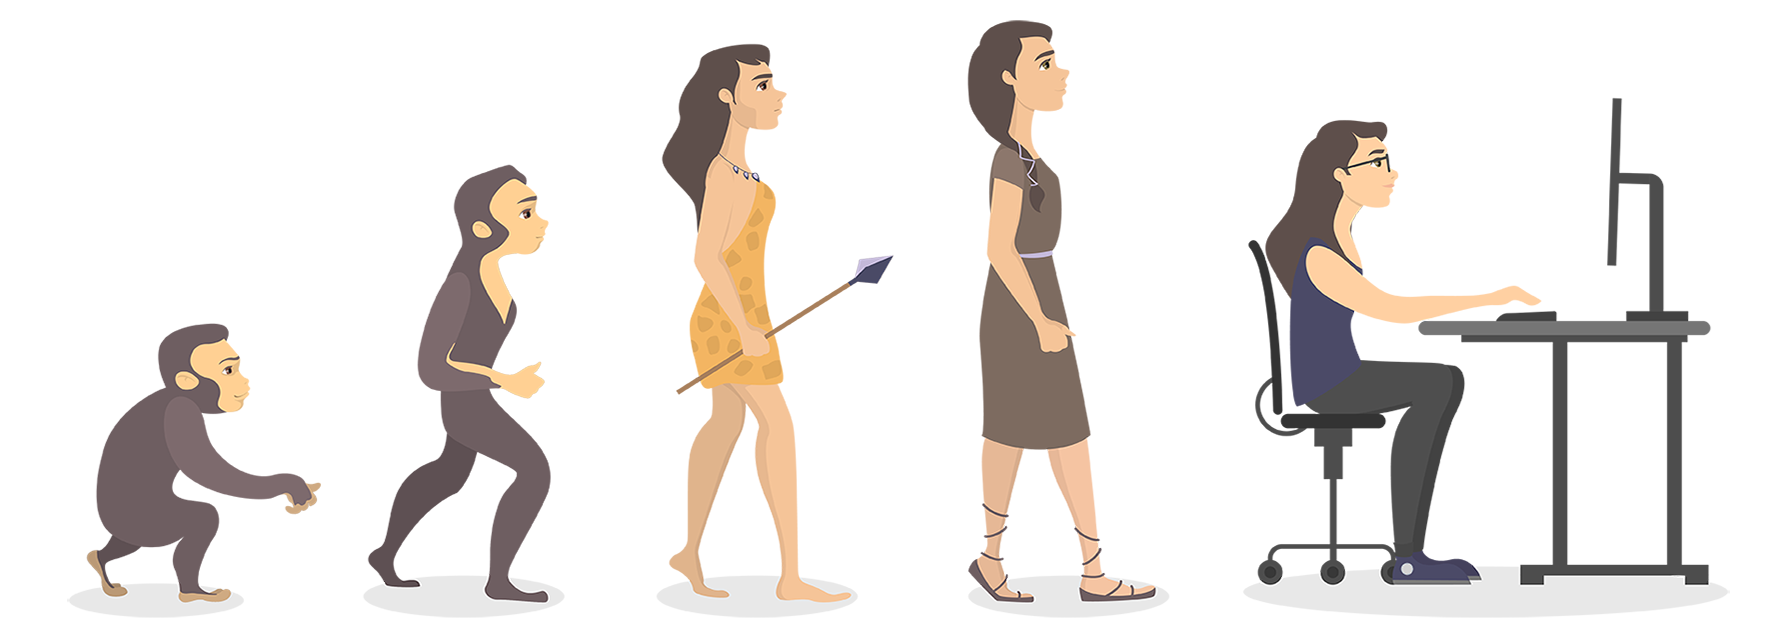 Image to show a woman evolving from ape to office worker